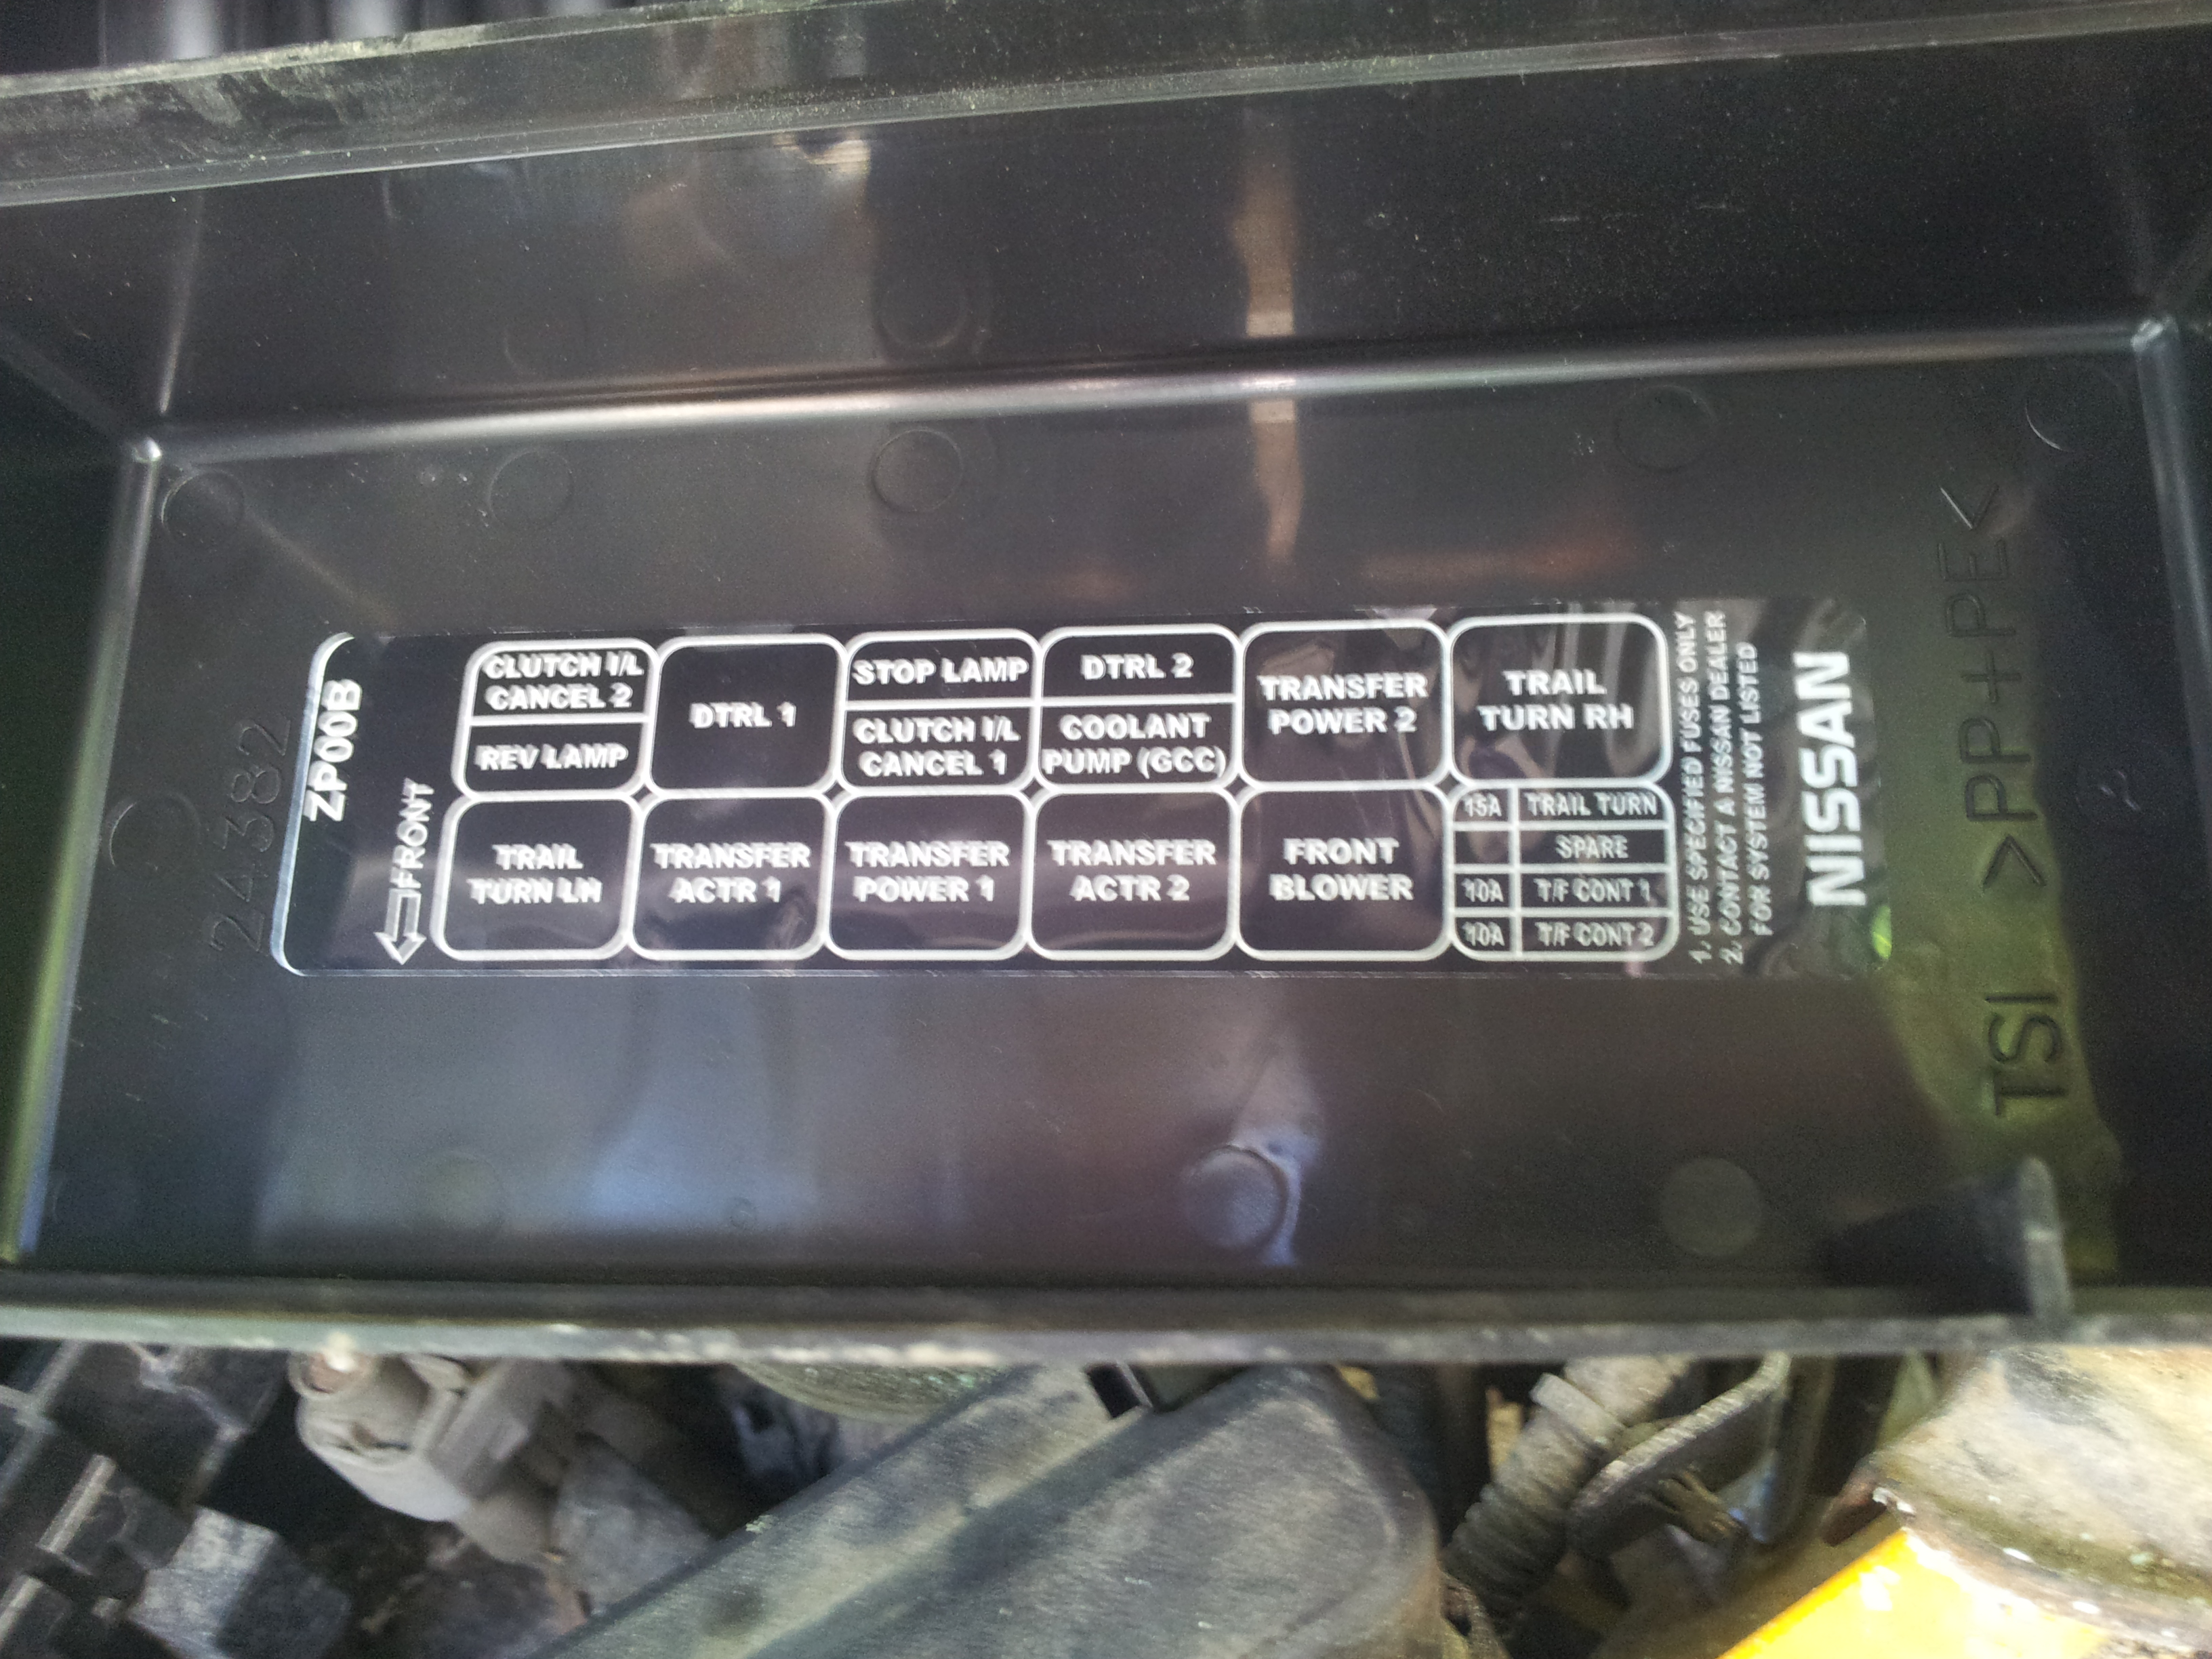 1989 Nissan Maxima Wiring Diagram Fuse Box Location Great Design Of 2000 Headlight 2004